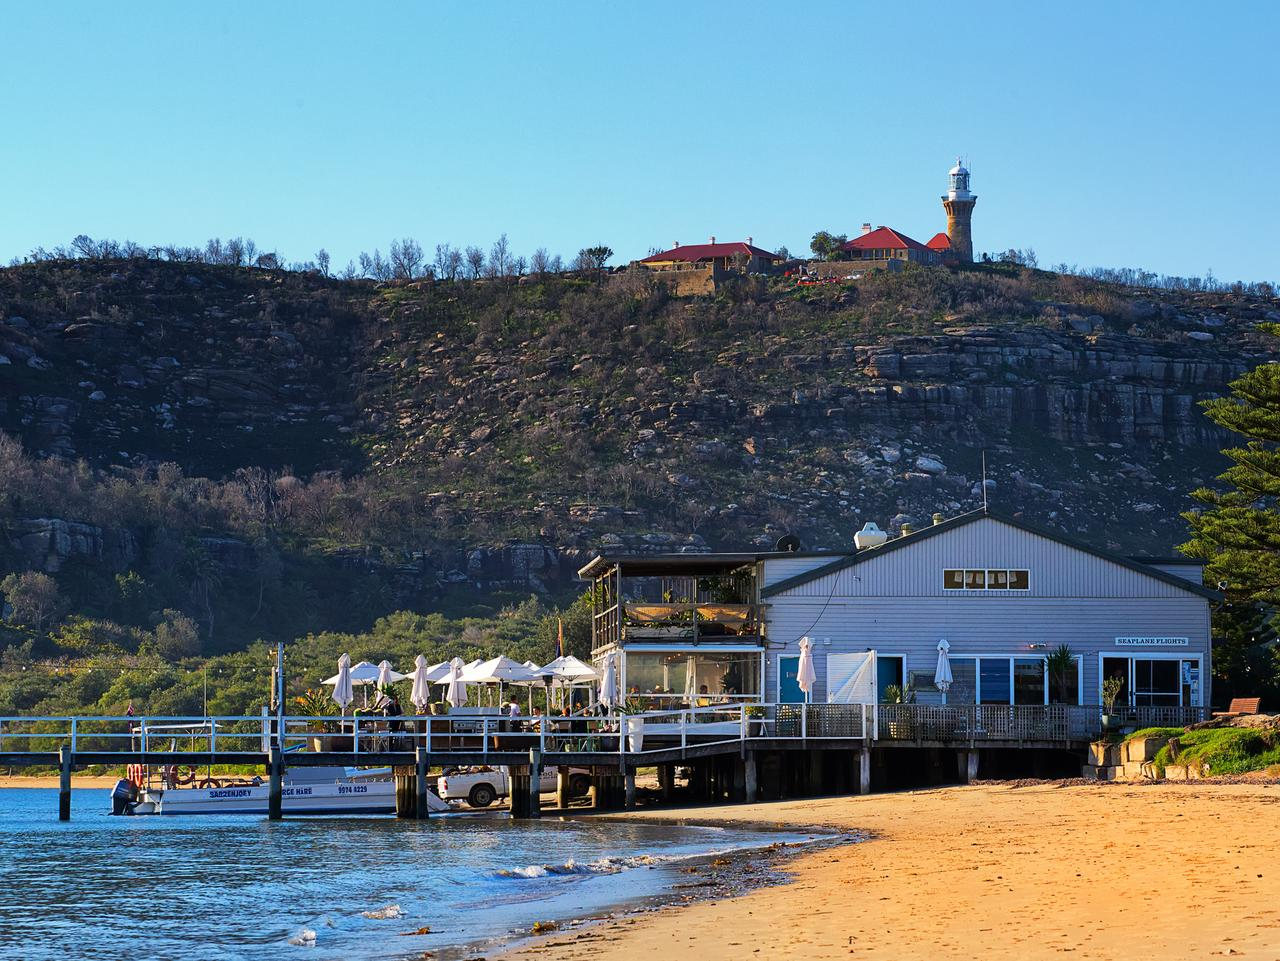 """Palm Beach,Australia - June 11,2014: The Boathouse restaurant with BarrenJoey Head and its lighthouse. The TV drama """"Home and Away"""" is filmed in Palm Beach."""